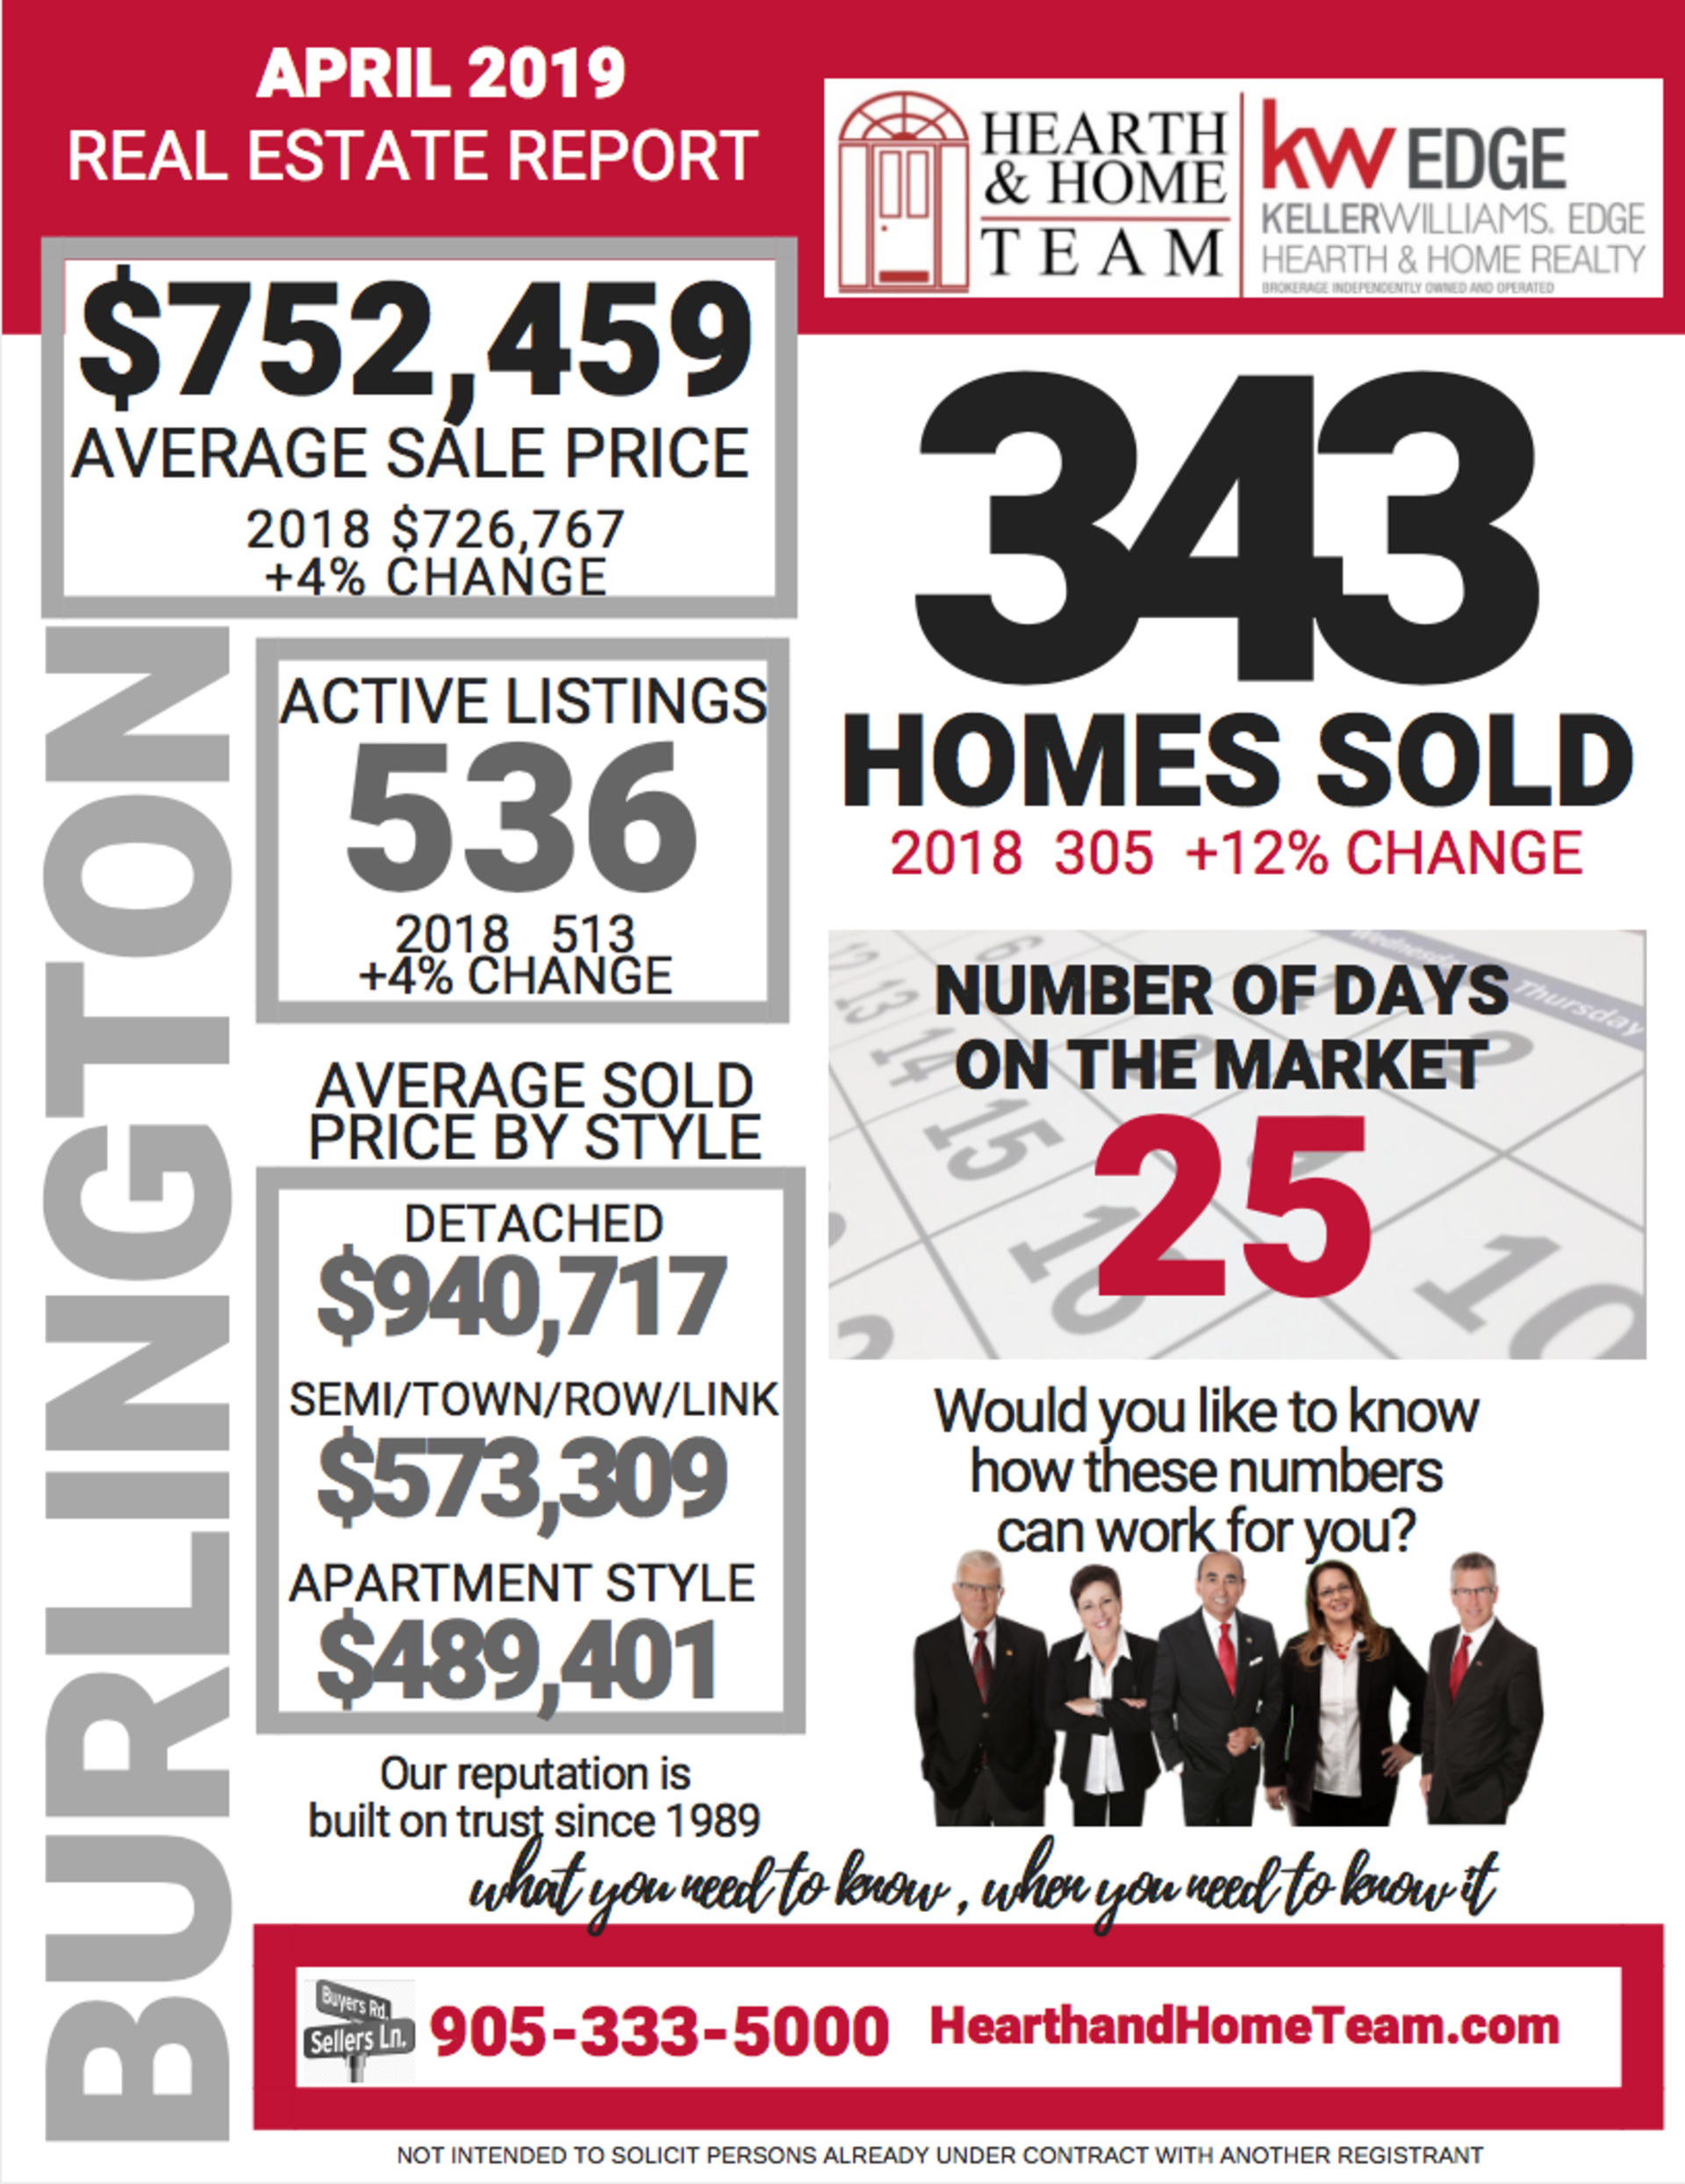 We love our numbers! APRIL STATS ARE IN.